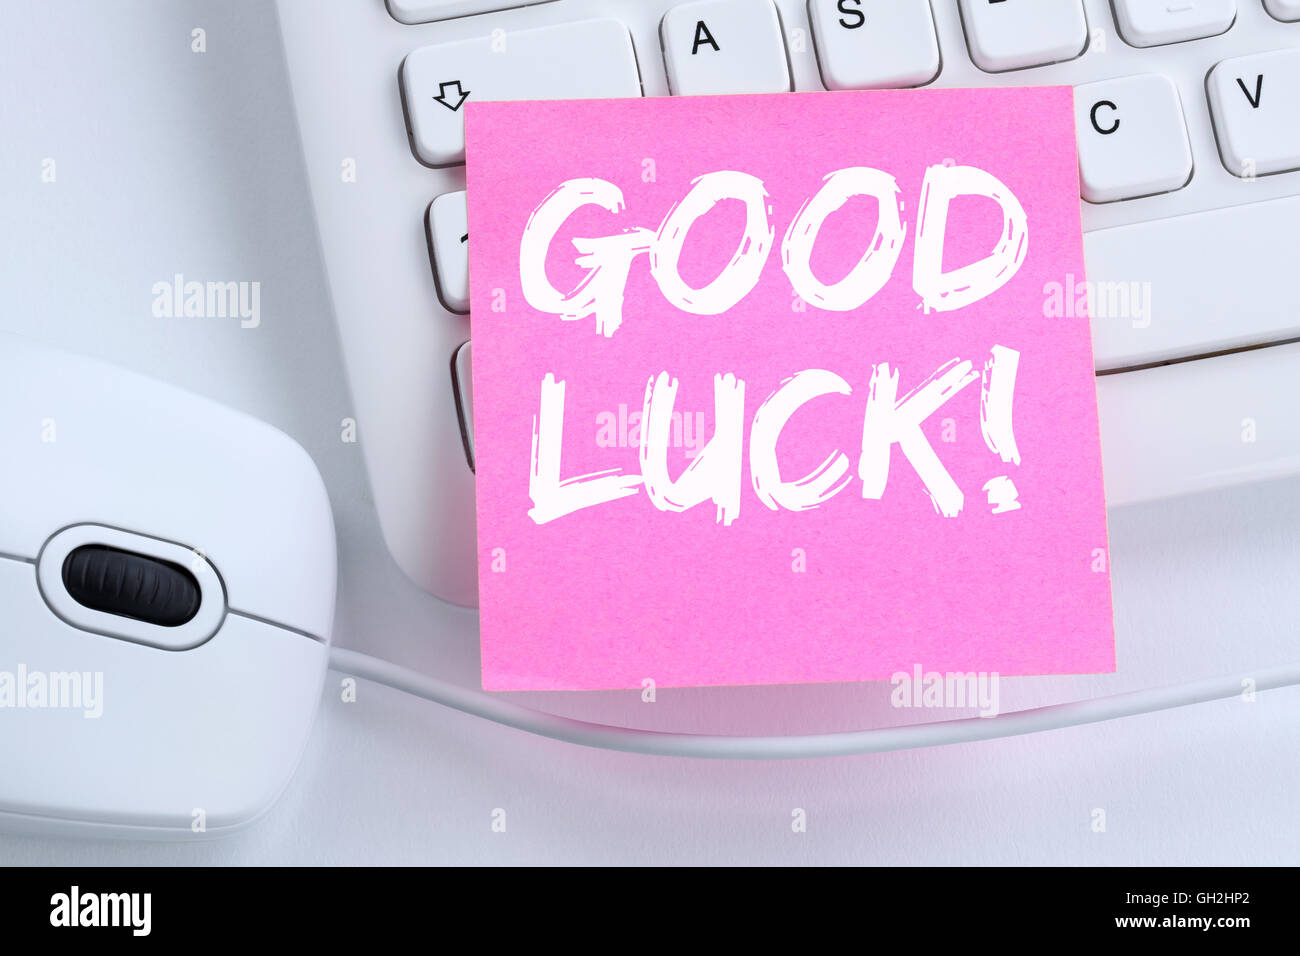 Good luck success successful test wish wishing office computer keyboard - Stock Image